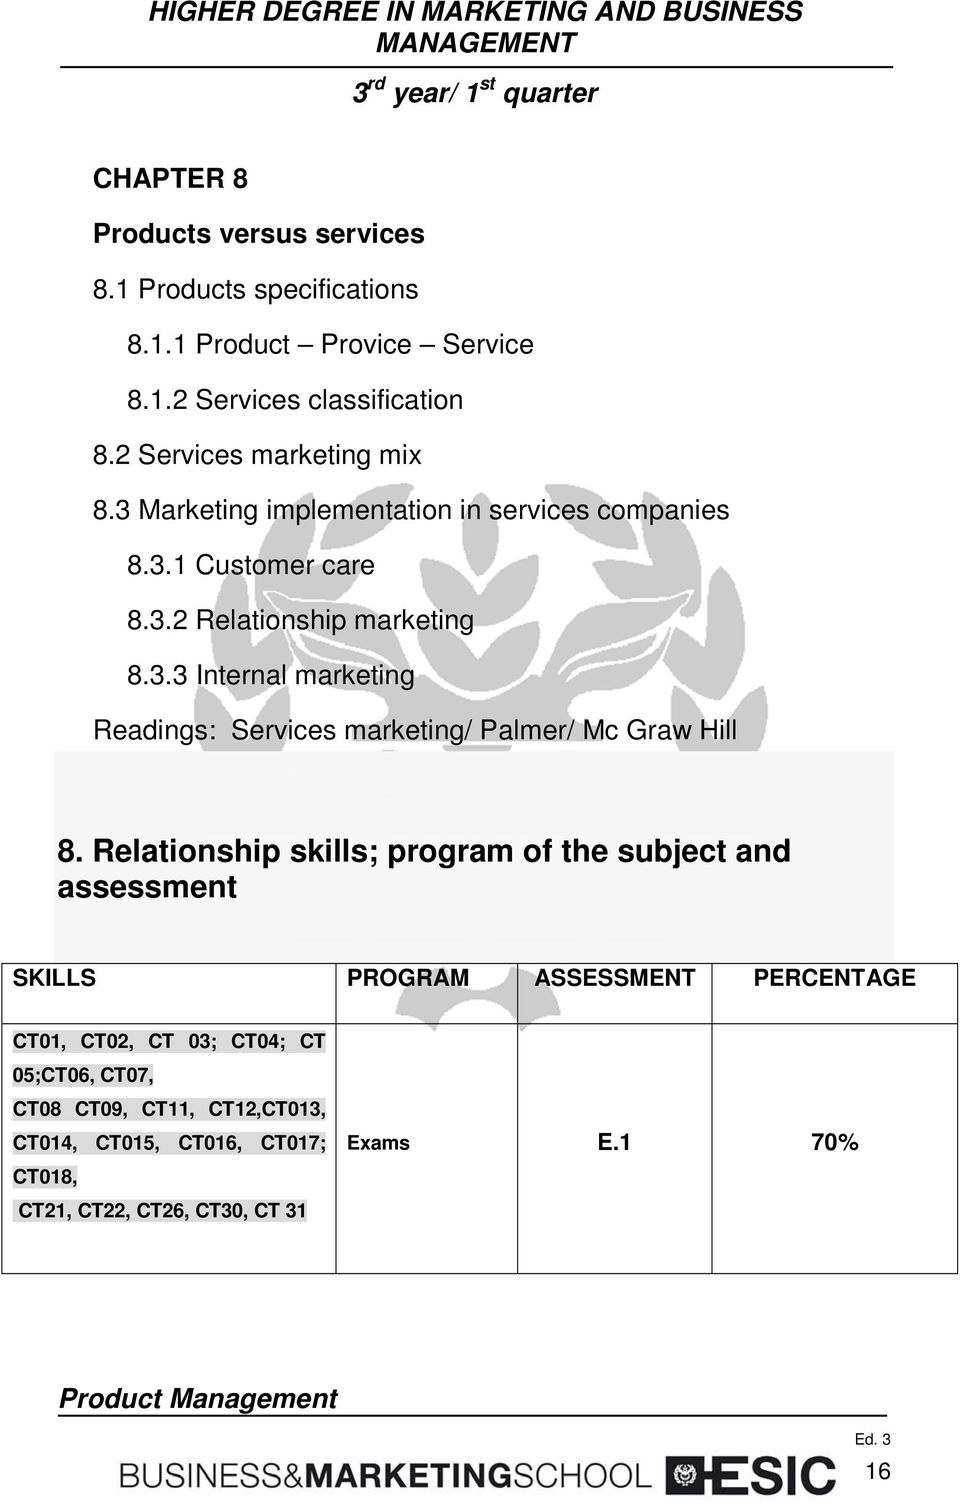 Relationship skills; program of the subject and assessment SKILLS PROGRAM ASSESSMENT PERCENTAGE CT01, CT02, CT 03; CT04; CT 05;CT06, CT07, CT08